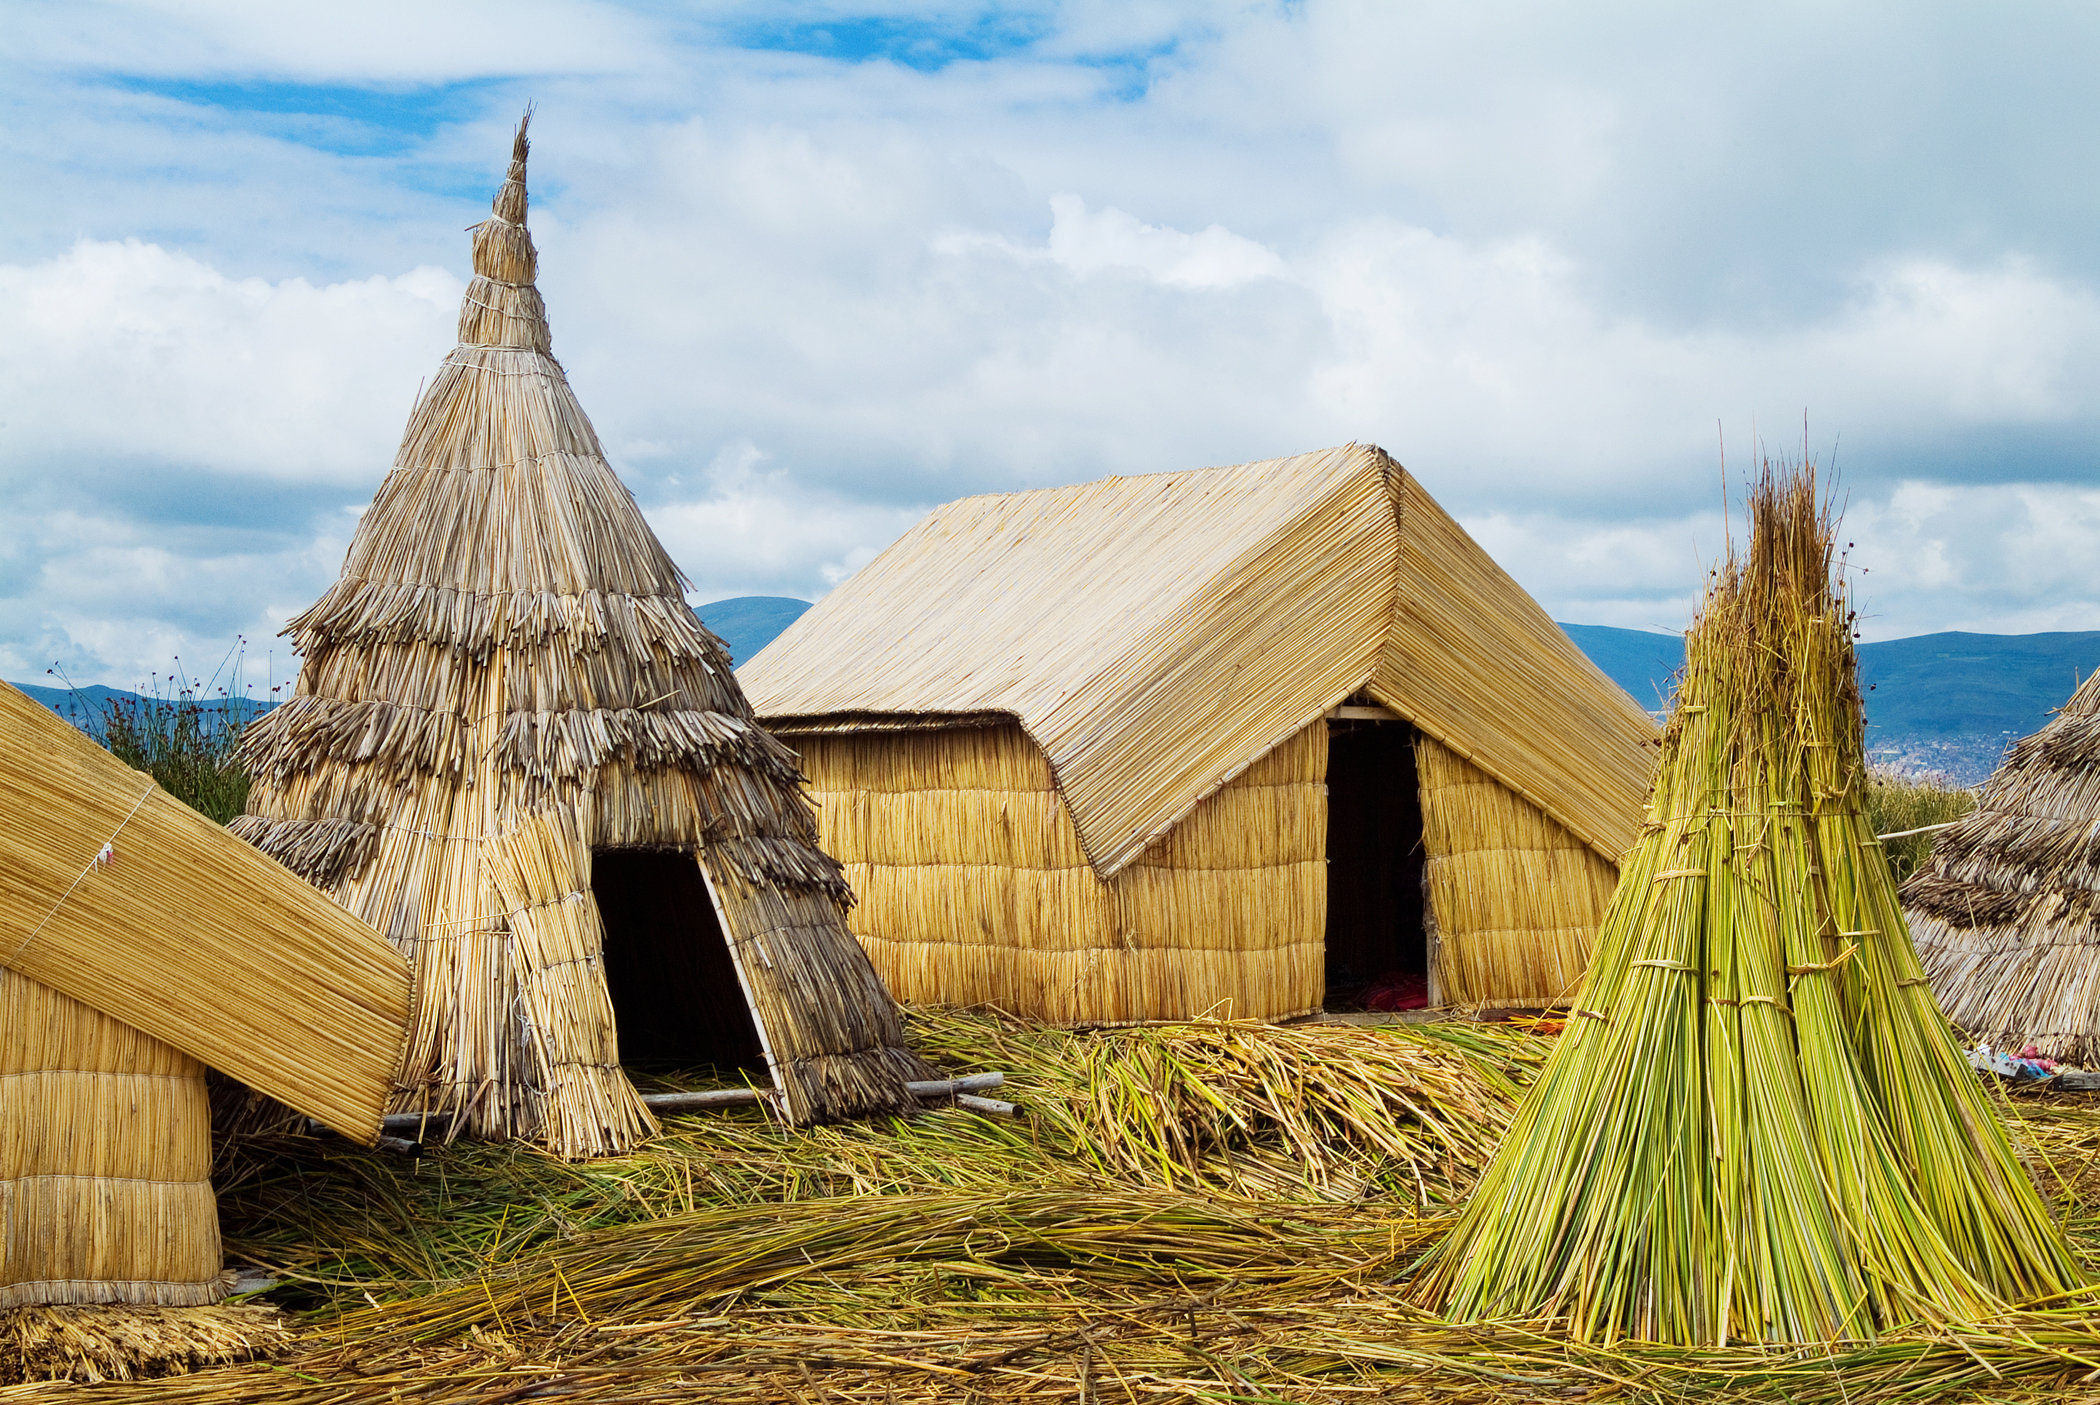 Floating village of Uros